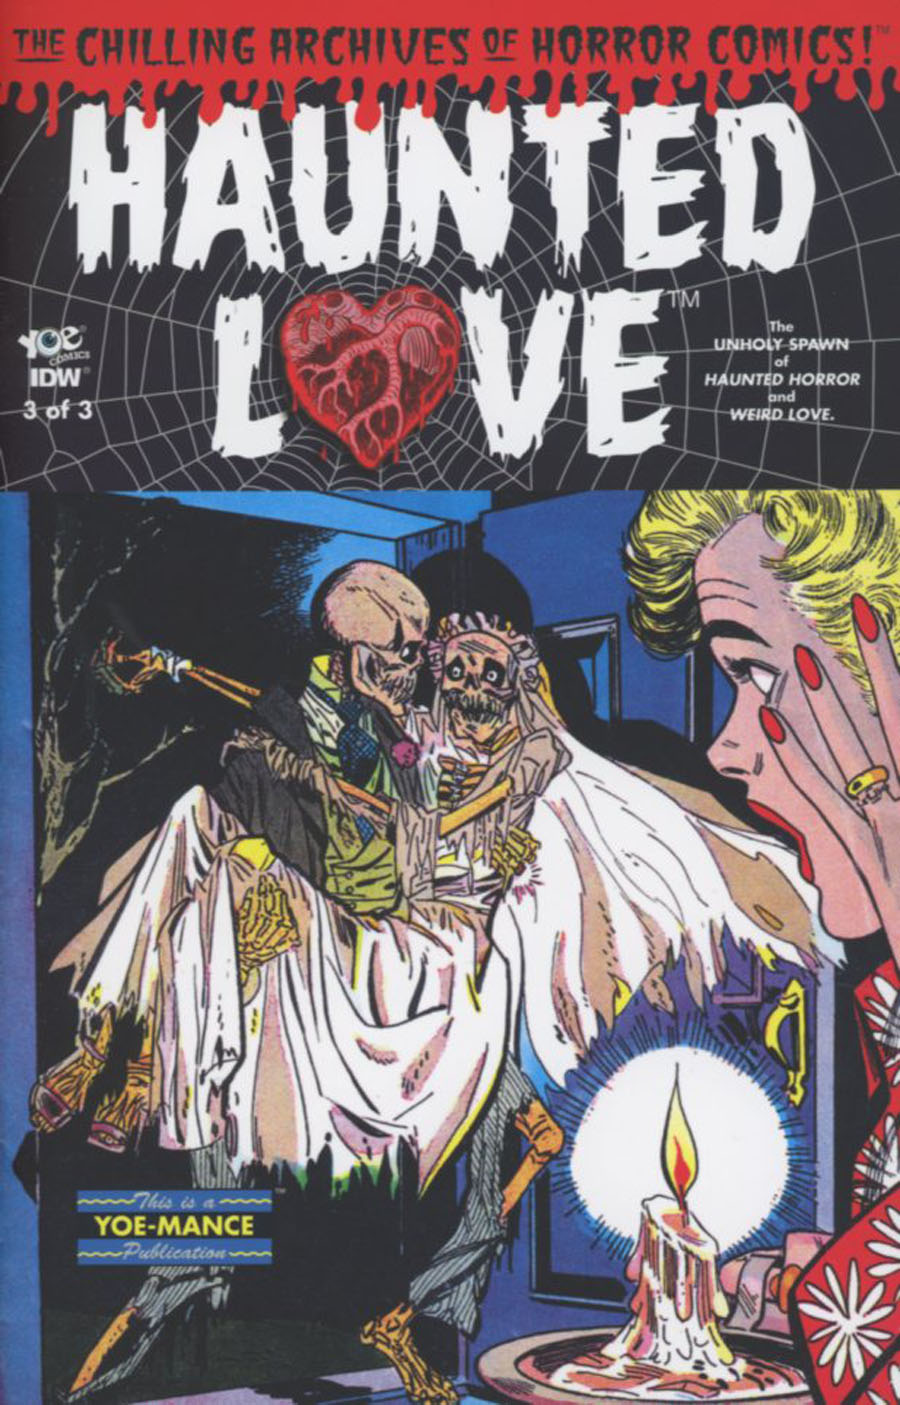 Haunted Love (IDW) #3